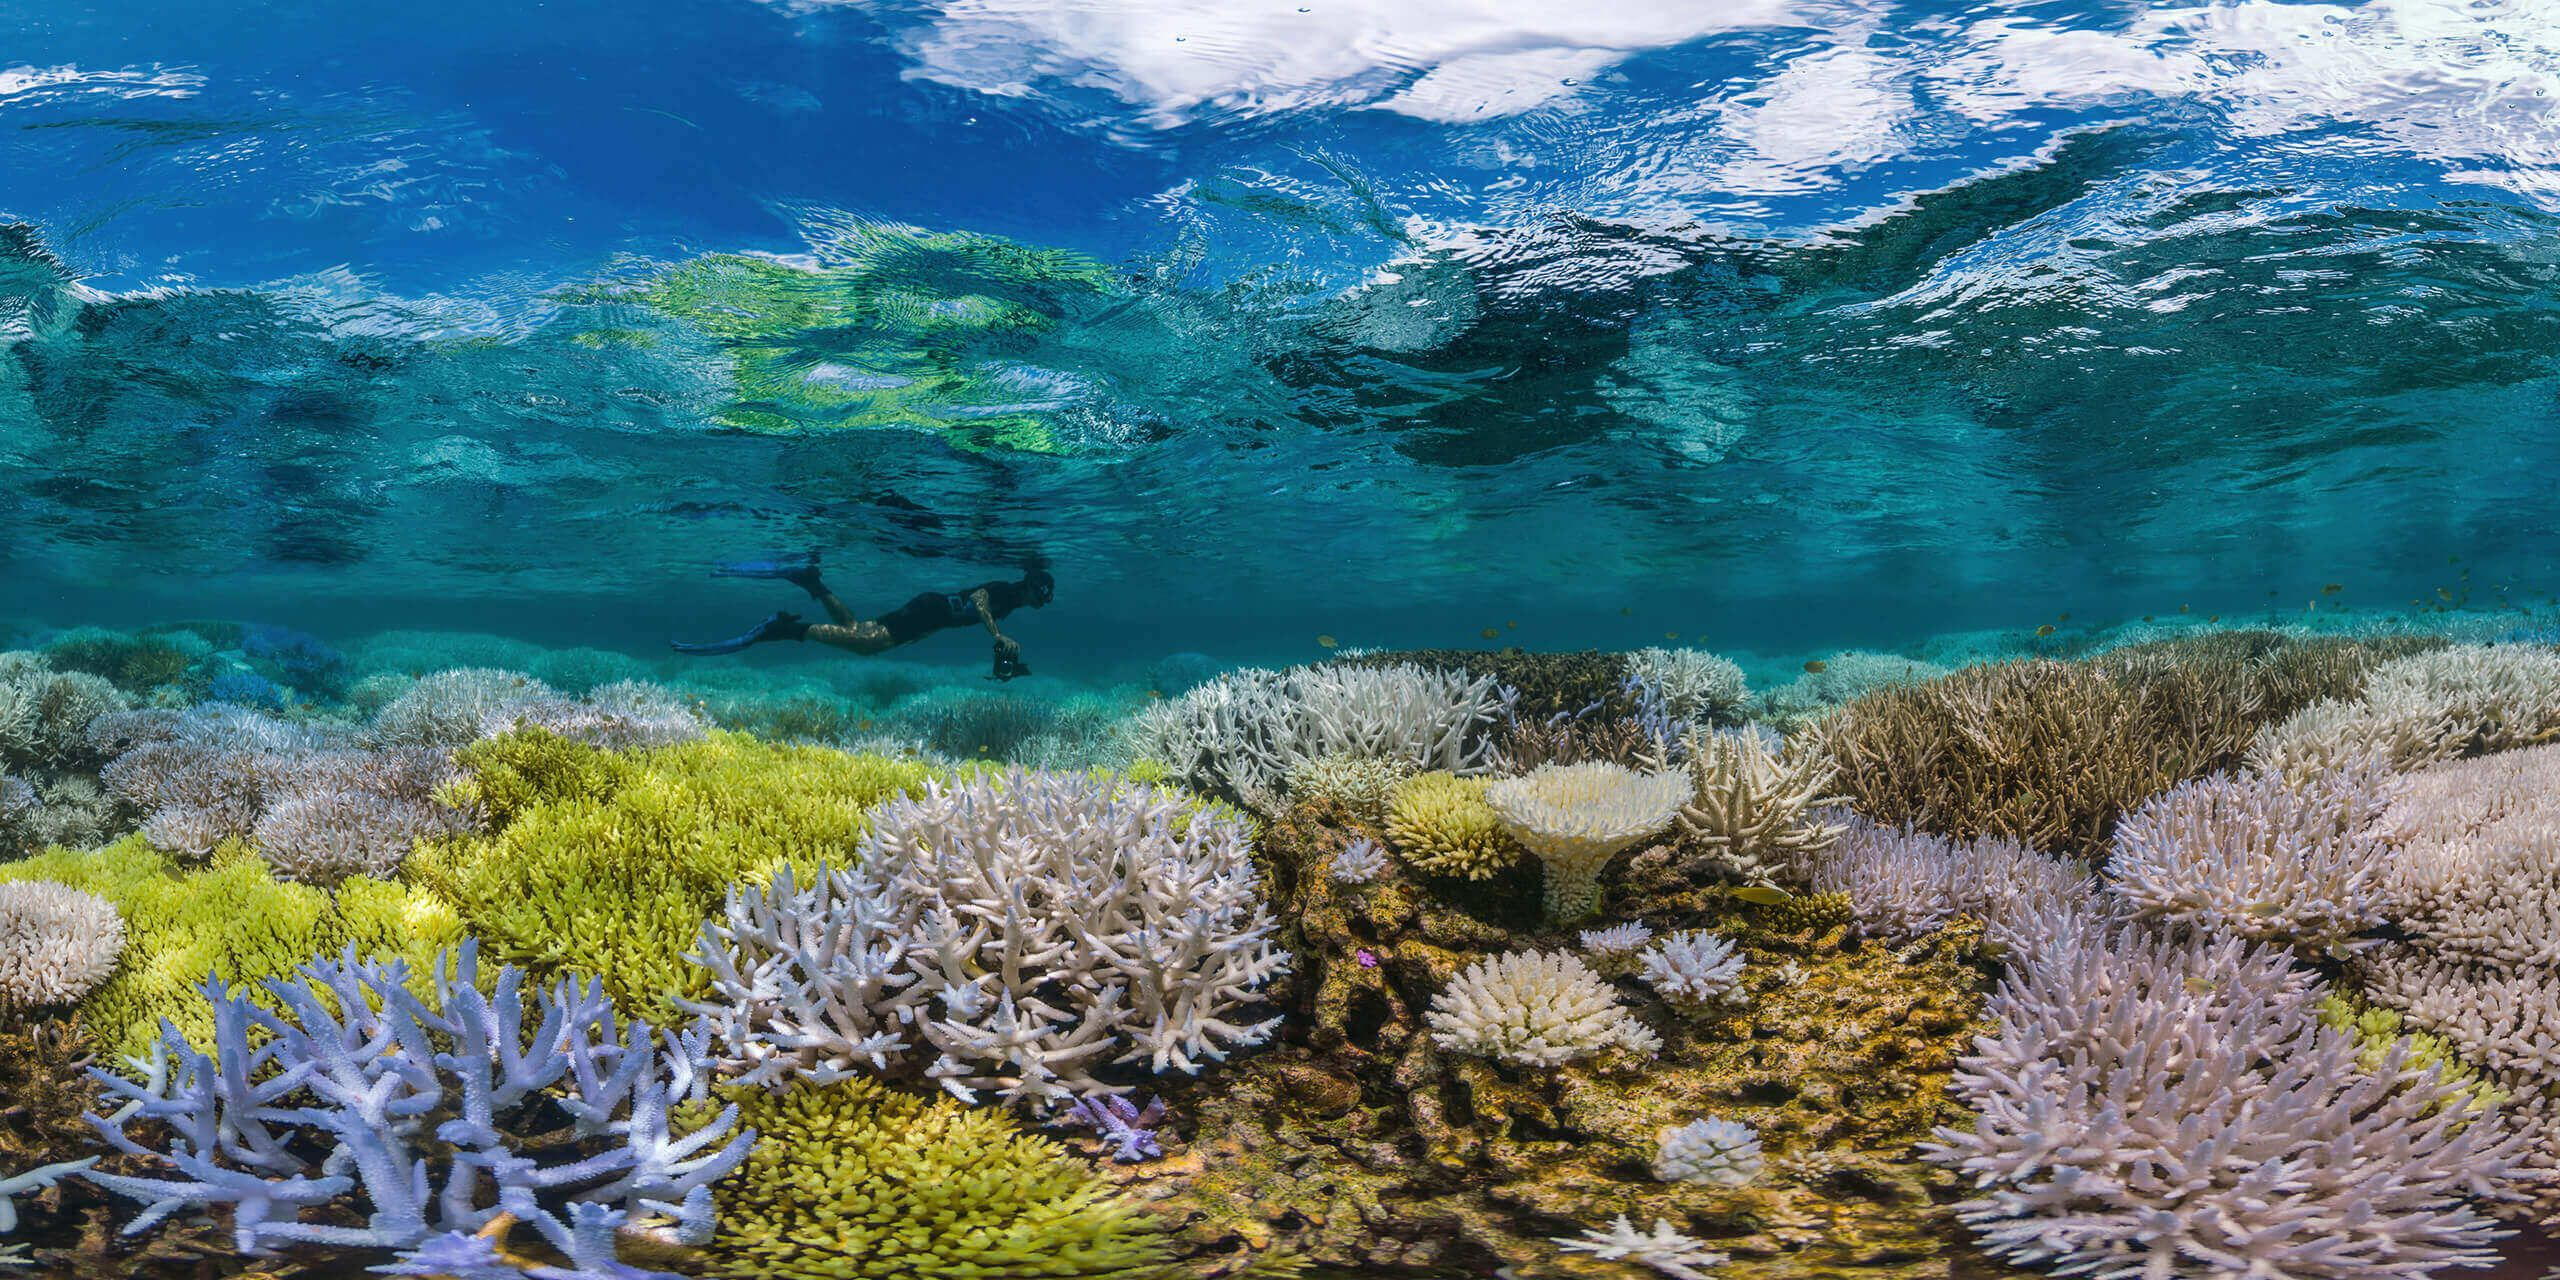 Coral reefs are by many definitions the most biodiverse places on the planet and a huge proportion of marine life depends on them.